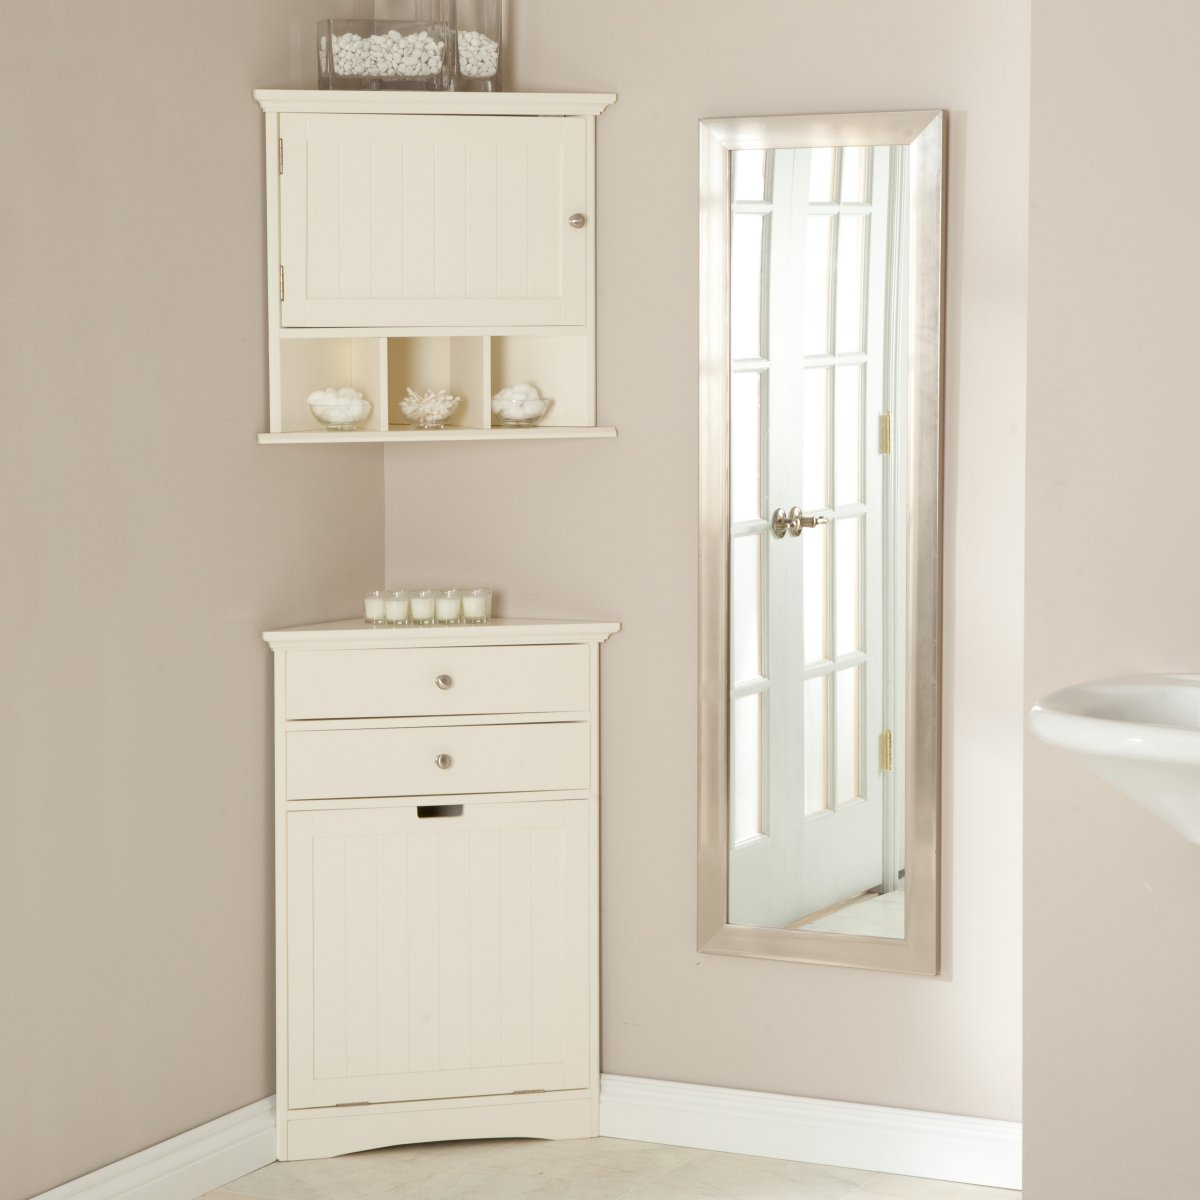 Corner cabinet for your bathroom a beauty to save space for Best bathroom storage